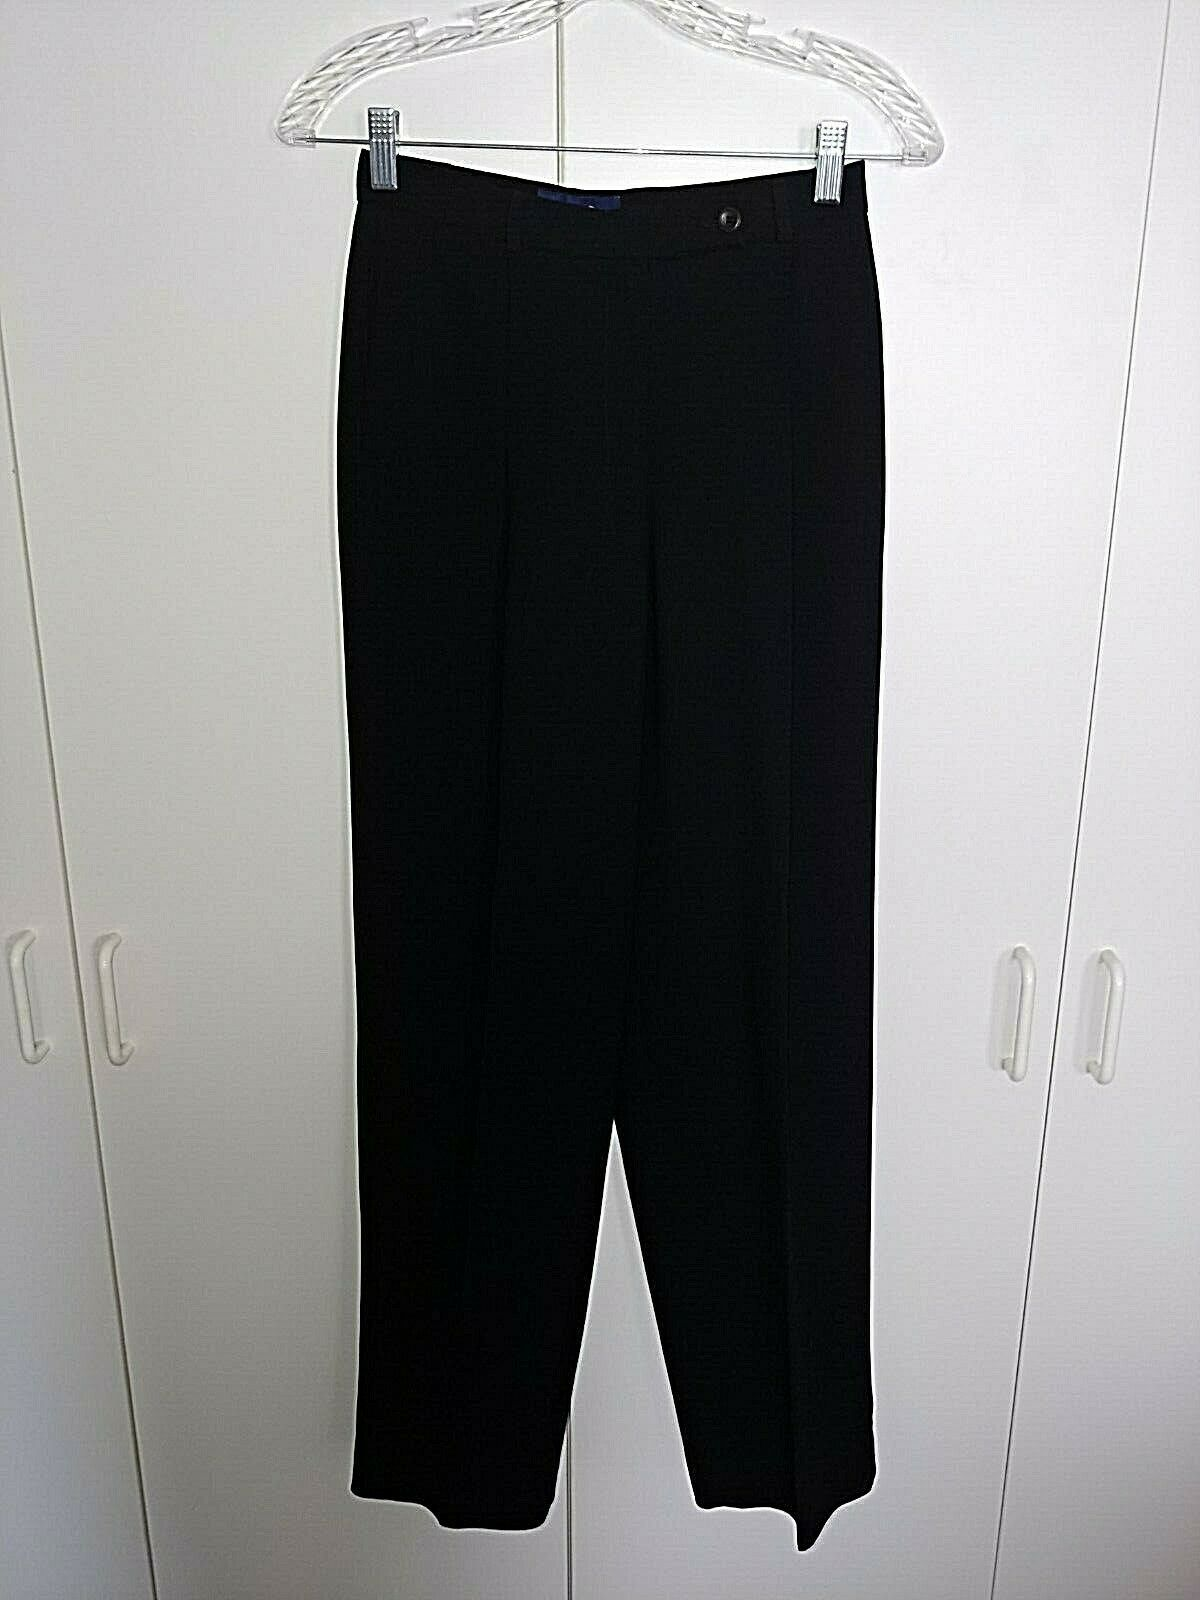 CHARTER CLUB LADIES BLACK LINED DRESS PANTS-4P-BARELY WORN-POLYESTER/ACETATE